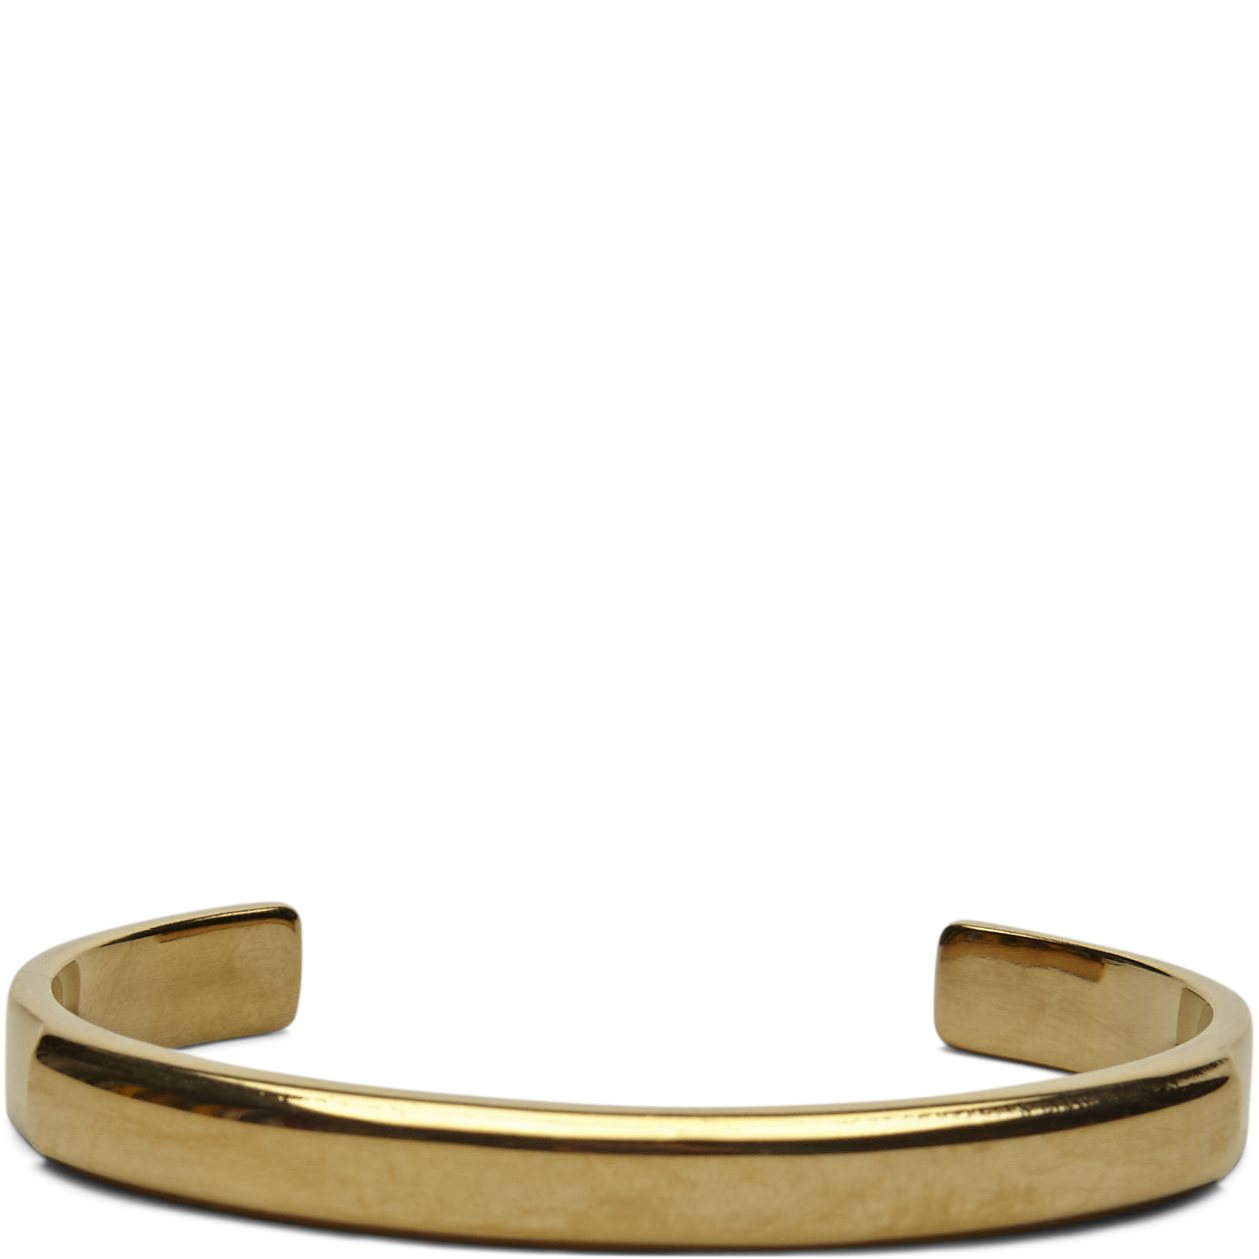 Albert Bracelet - Accessories - Guld